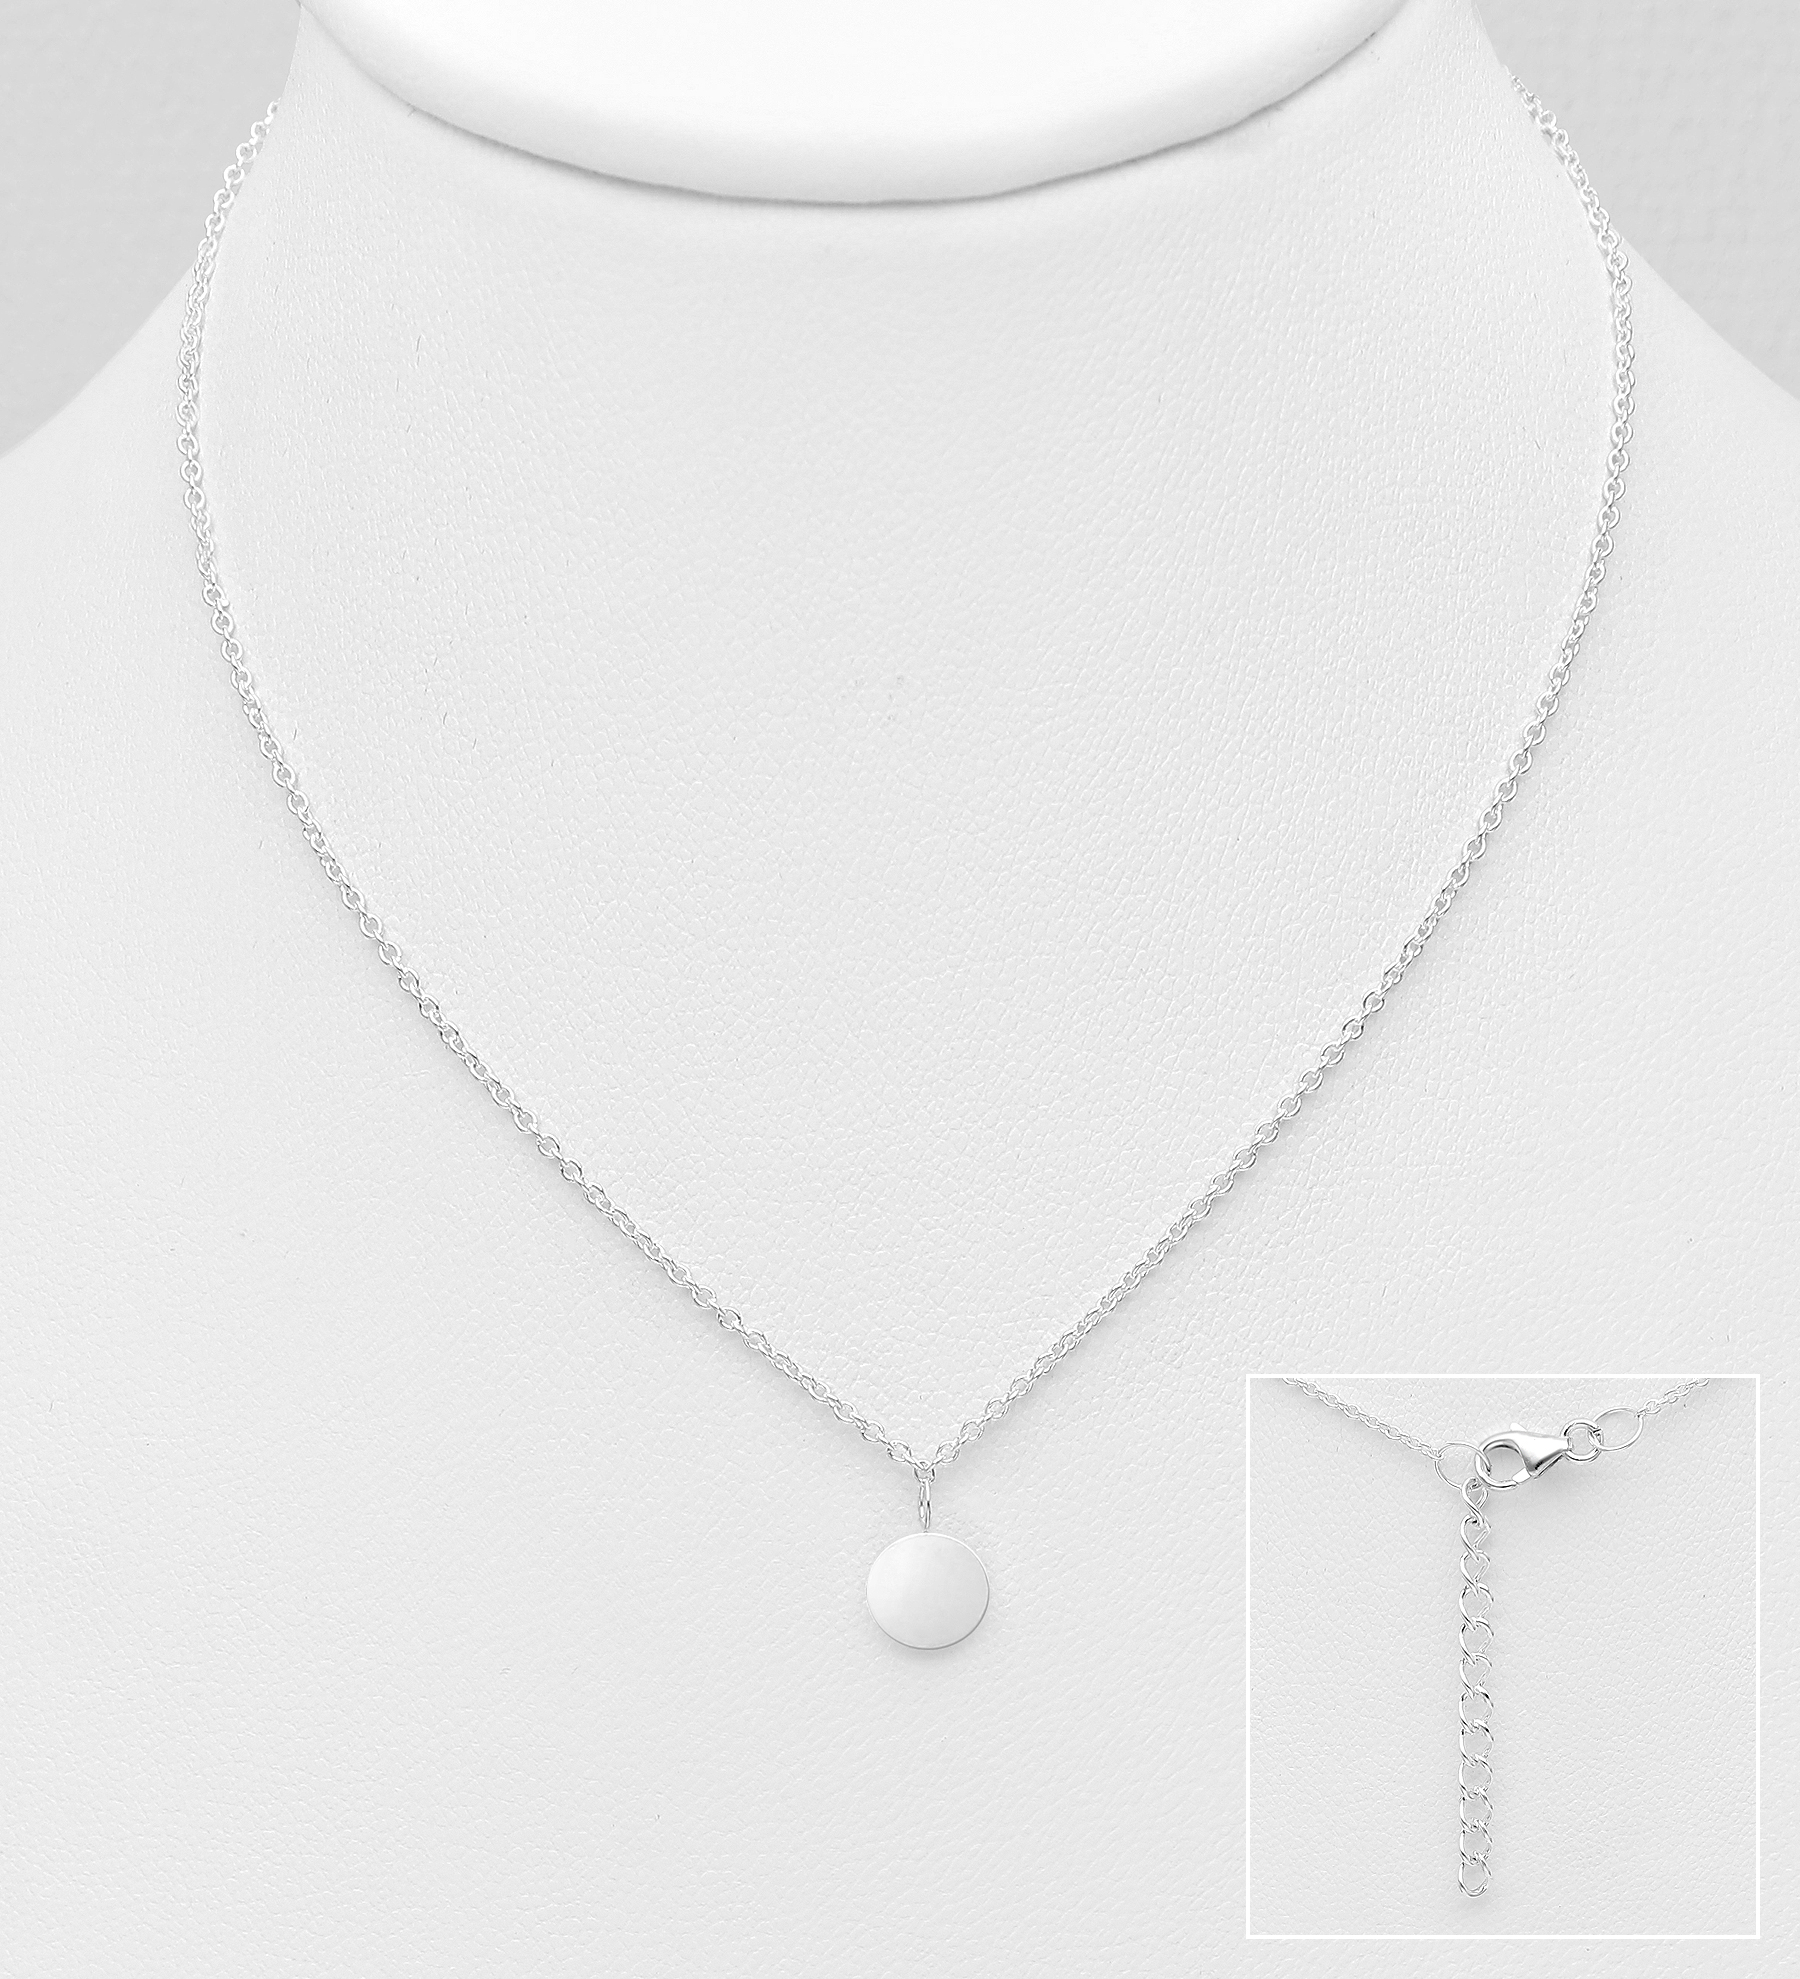 706-31043 - 925 Sterling Silver Necklace Featuring Circle Pendant